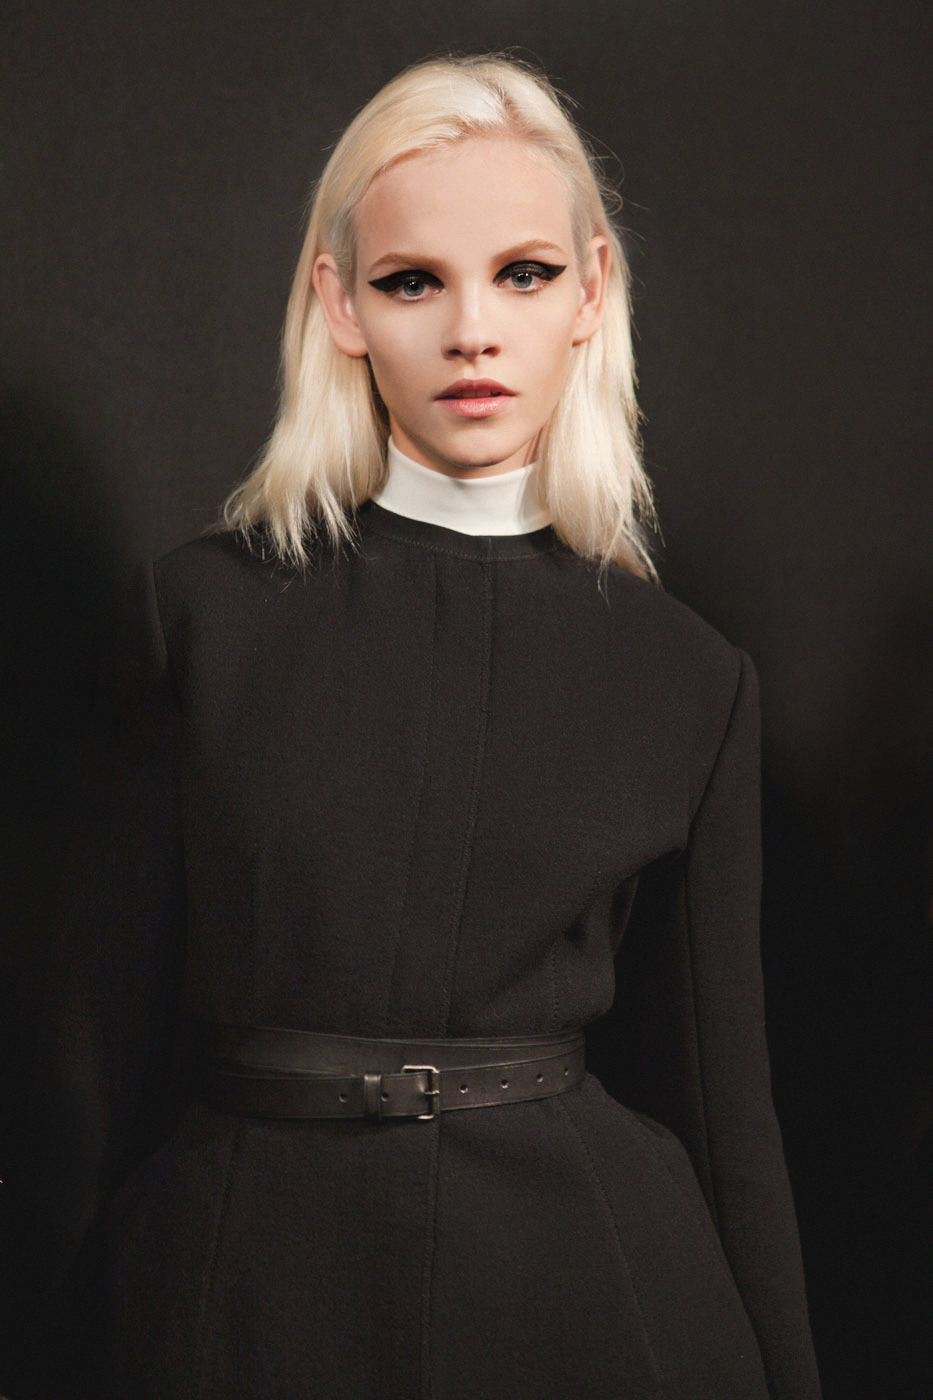 Lanvin Fall 2012 Backstage featuring Ginta Lapina